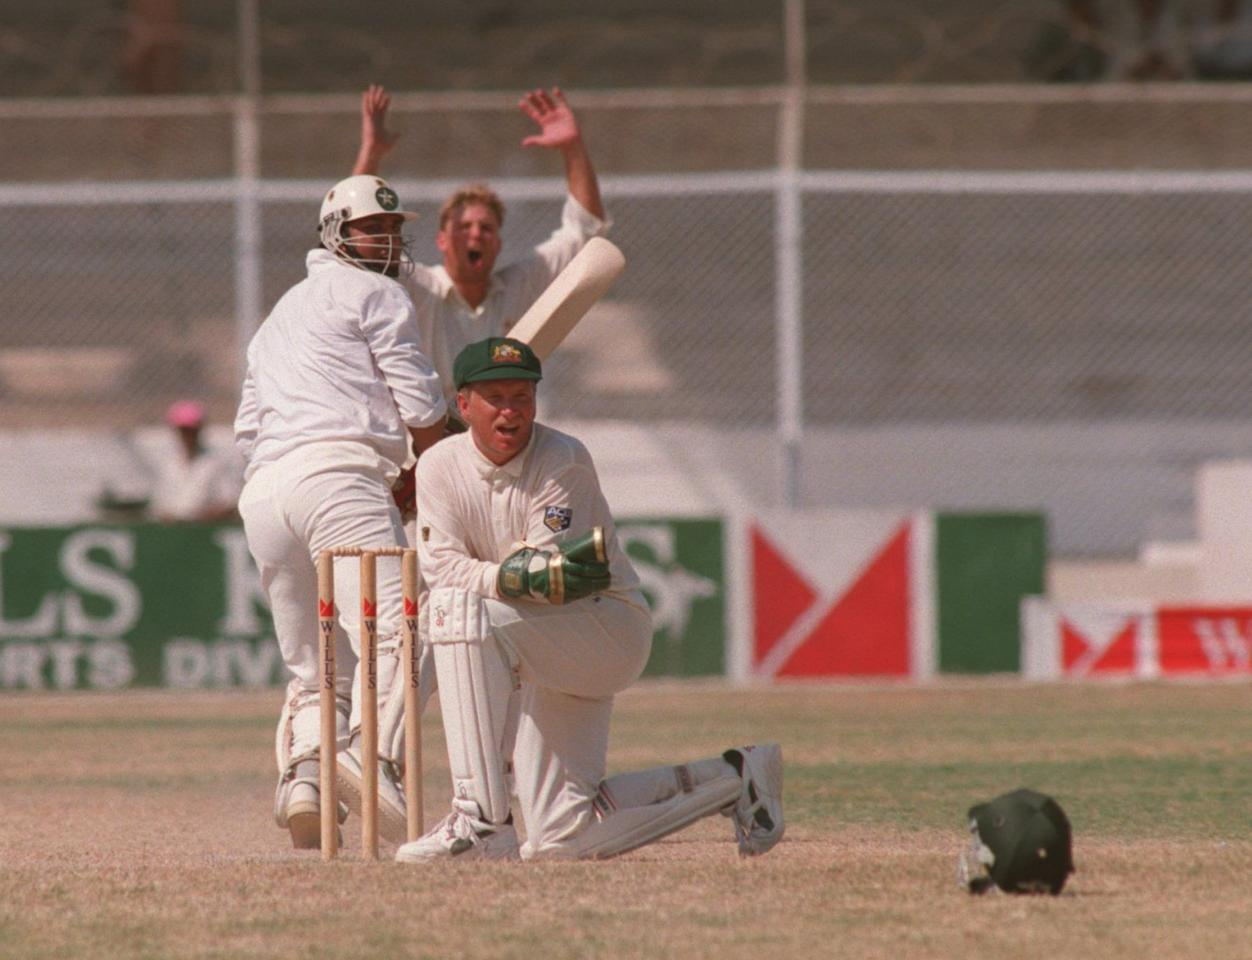 2 OCT 1994:  AUSTRALIAN WICKET-KEEPER IAN HEALY CAN ONLY WATCH AS SHANE WARNE's BALL TO PAKISTAN's INZAMAM UL-HAQ RUNS FOR 4 LEG BYES TO GIVE PAKISTAN VICTORY IN THE FIRST TEST MATCH IN KARACHI BY ONE WICKET. Mandatory Credit: Shaun Botterill/ALLSPORT